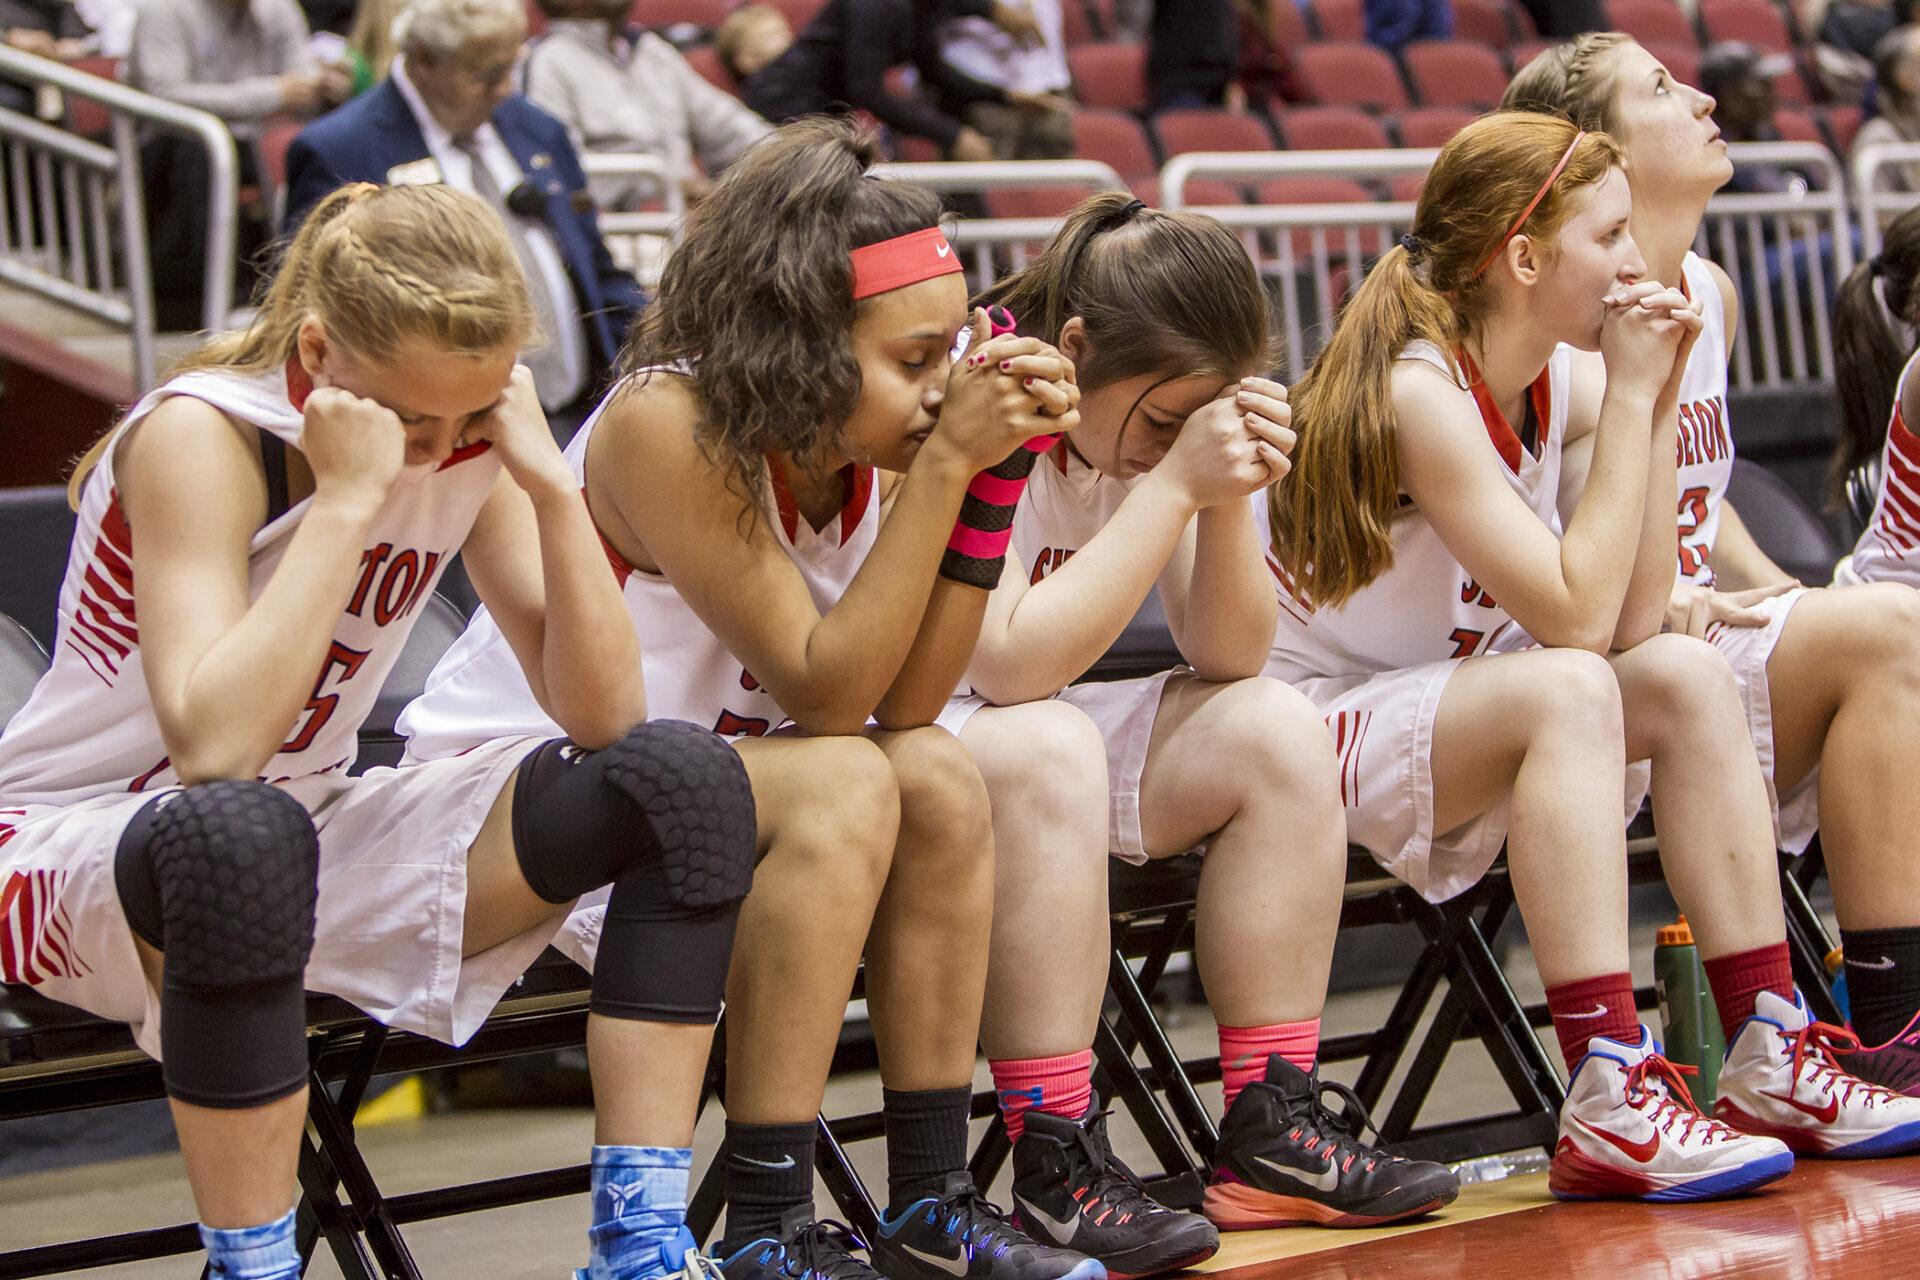 Seton girls basketball takes runner-up after hard final loss